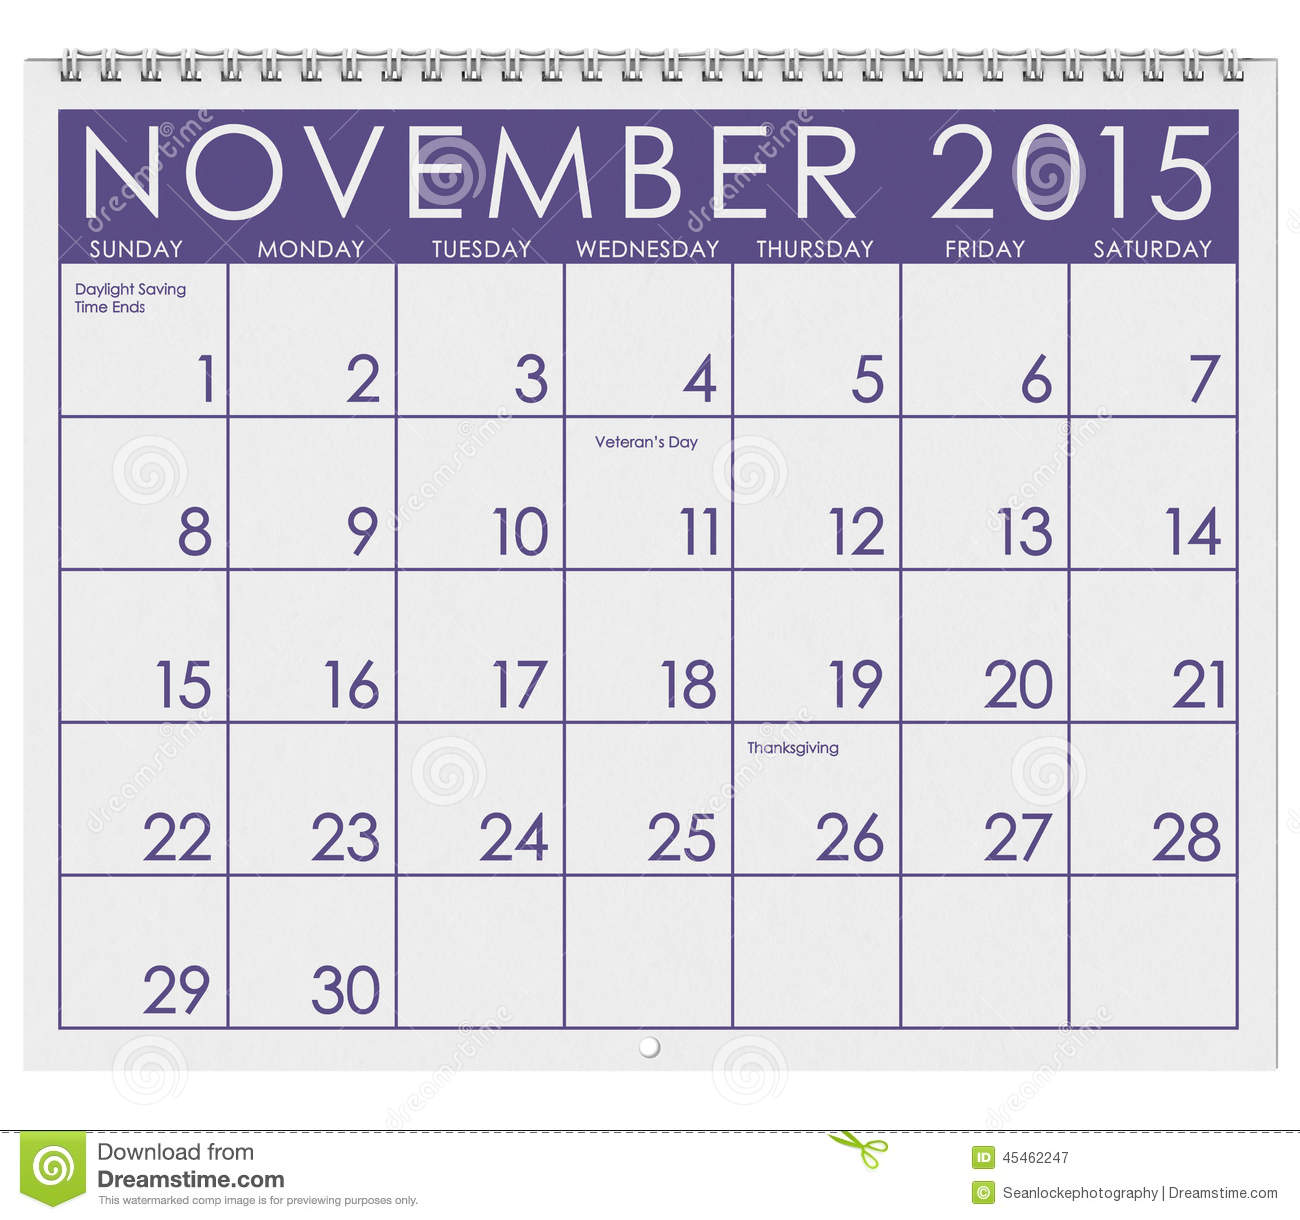 Calendar clipart november 2015 picture freeuse library Calendar clipart november 2015 - ClipartFest picture freeuse library